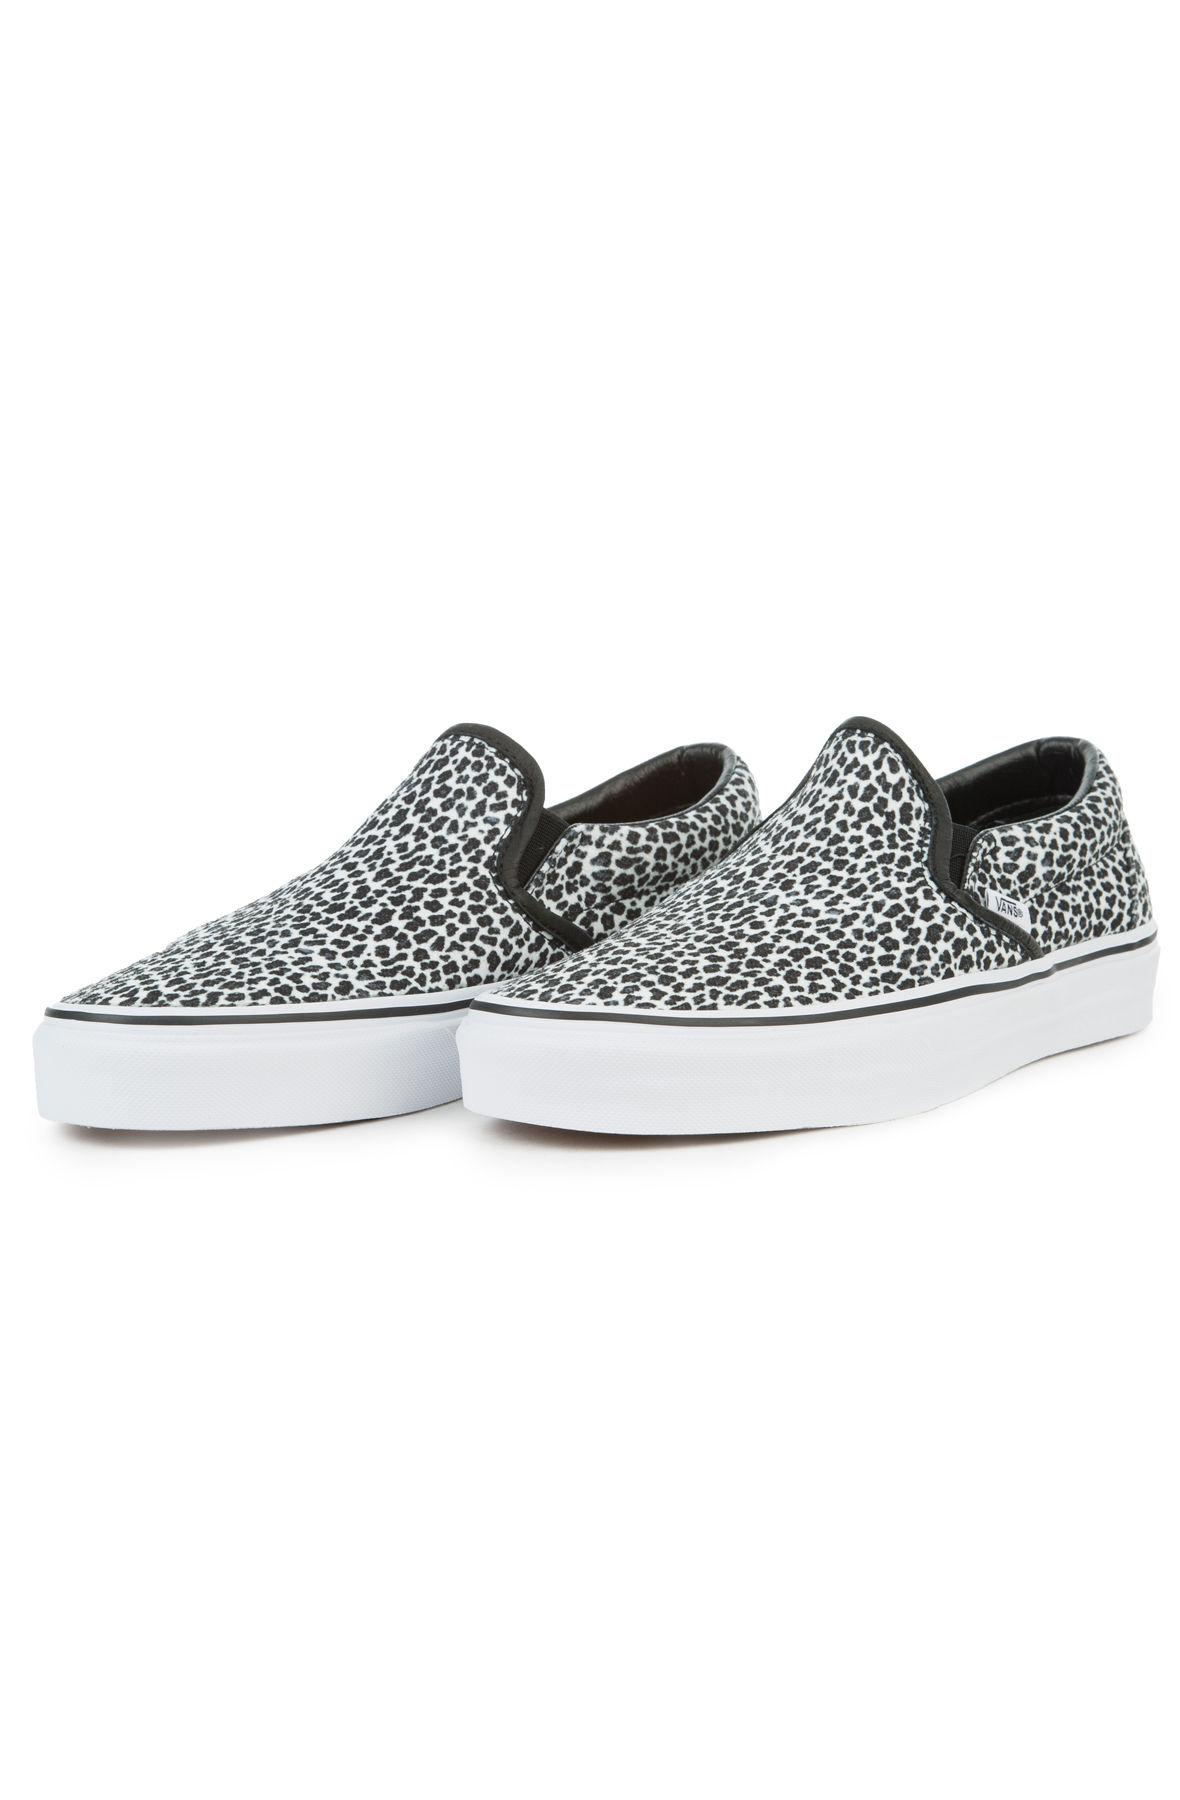 01c6a1d1361 Lyst - Vans The Women s Mini Leopard Classic Slip-on In Black And ...